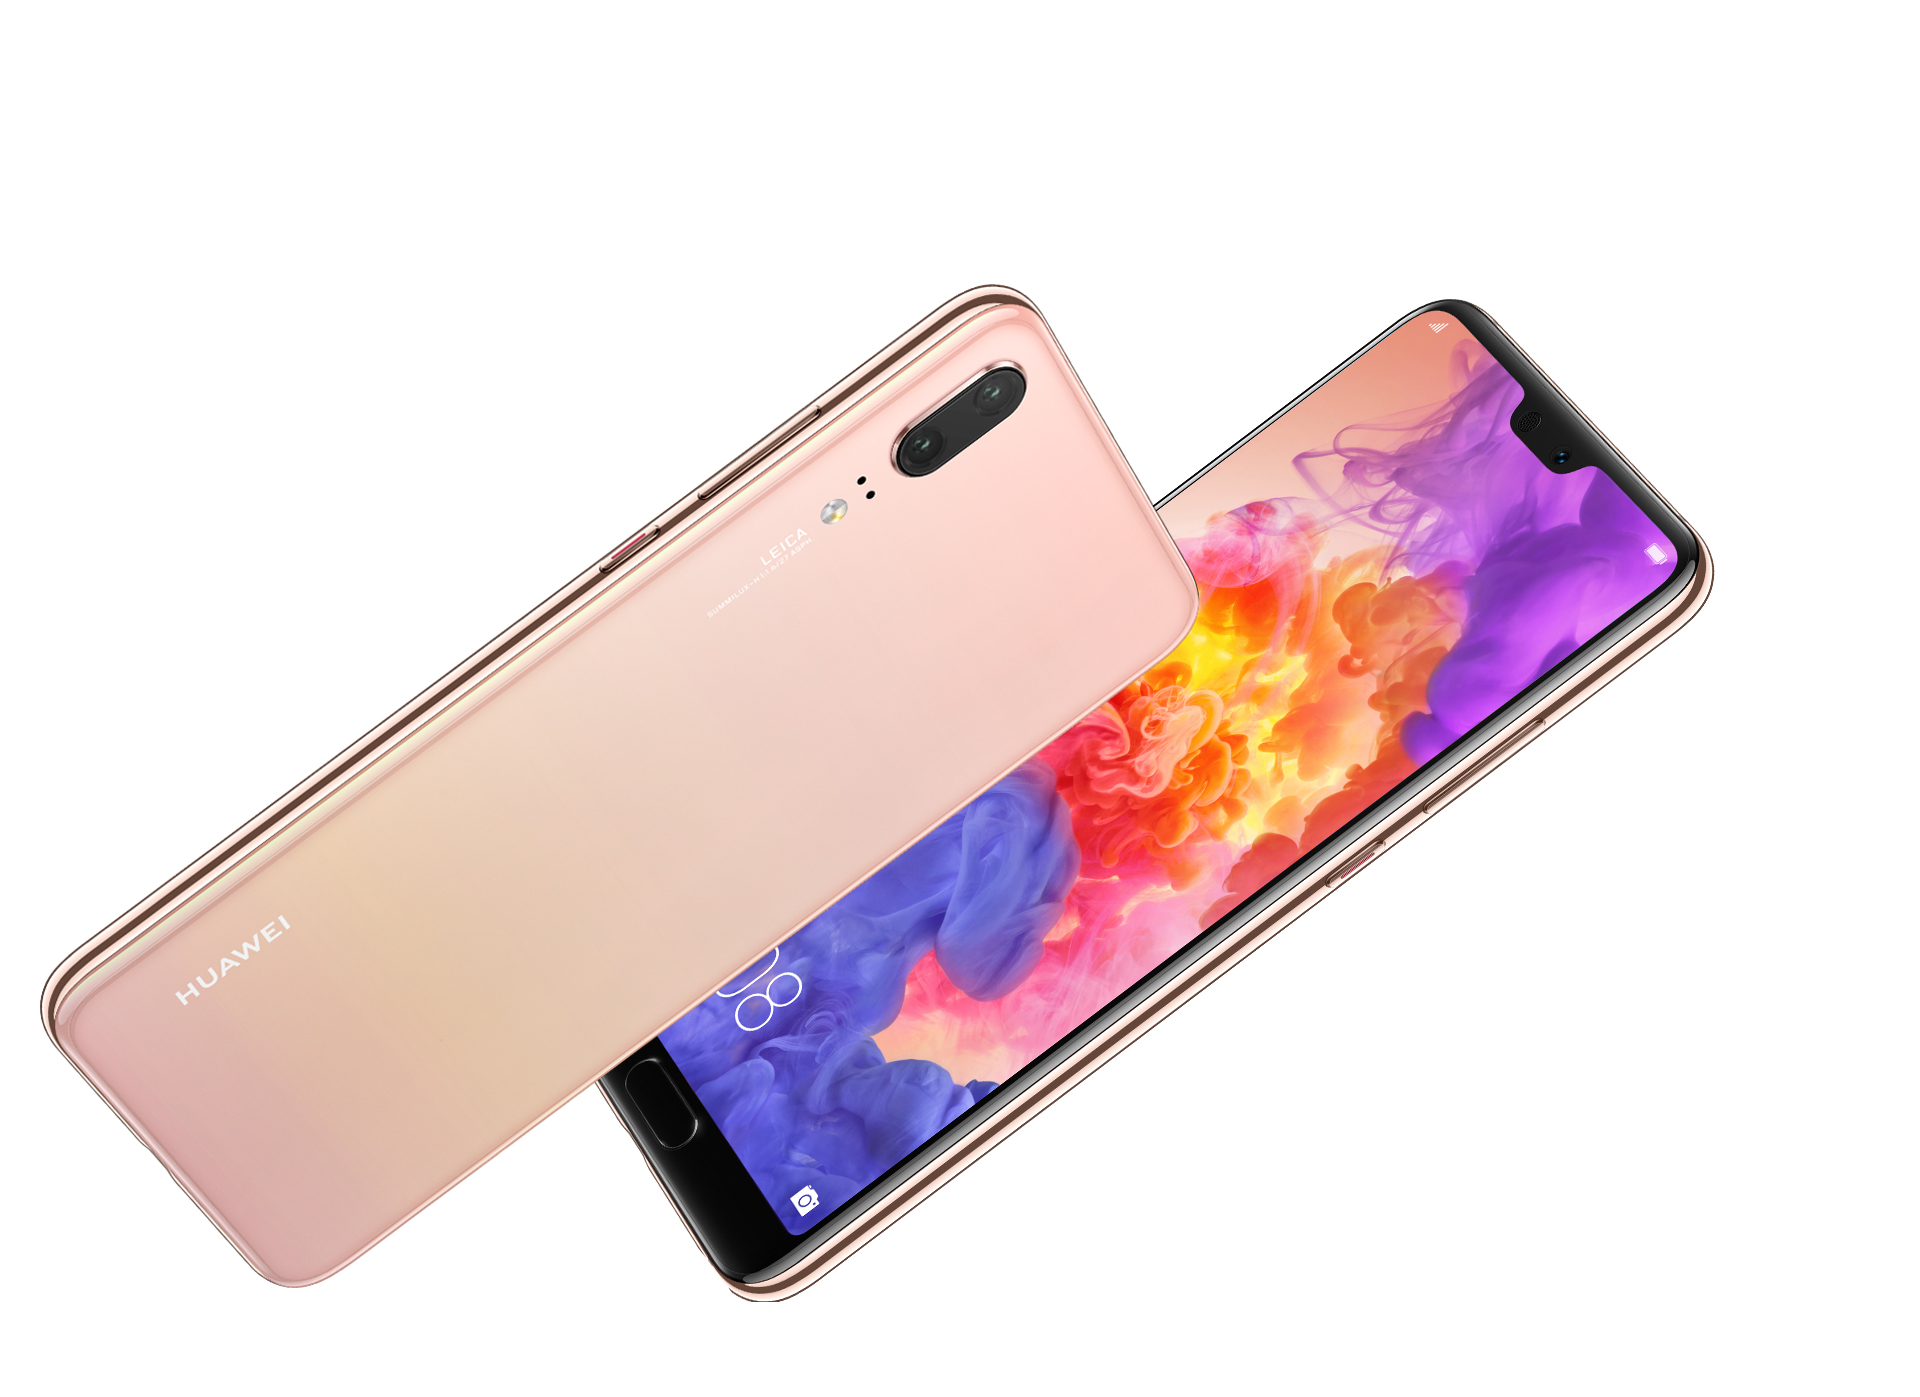 Huawei P20 Smartphone Android Phones Huawei Global